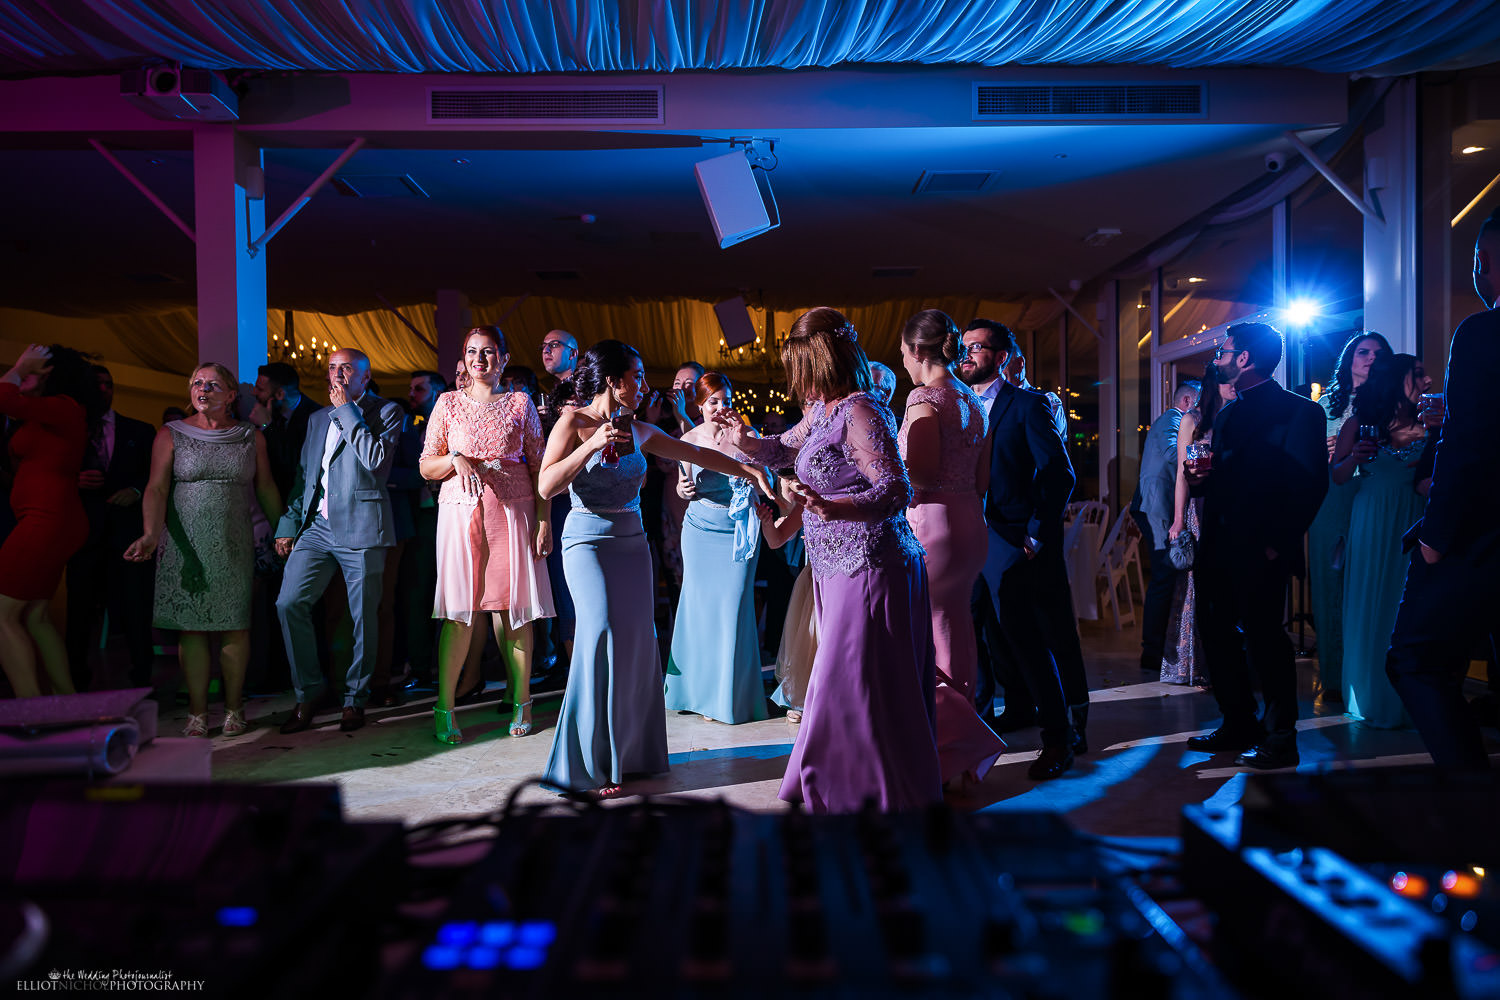 Wedding reception partying. Photo by Elliot Nichol Photography.